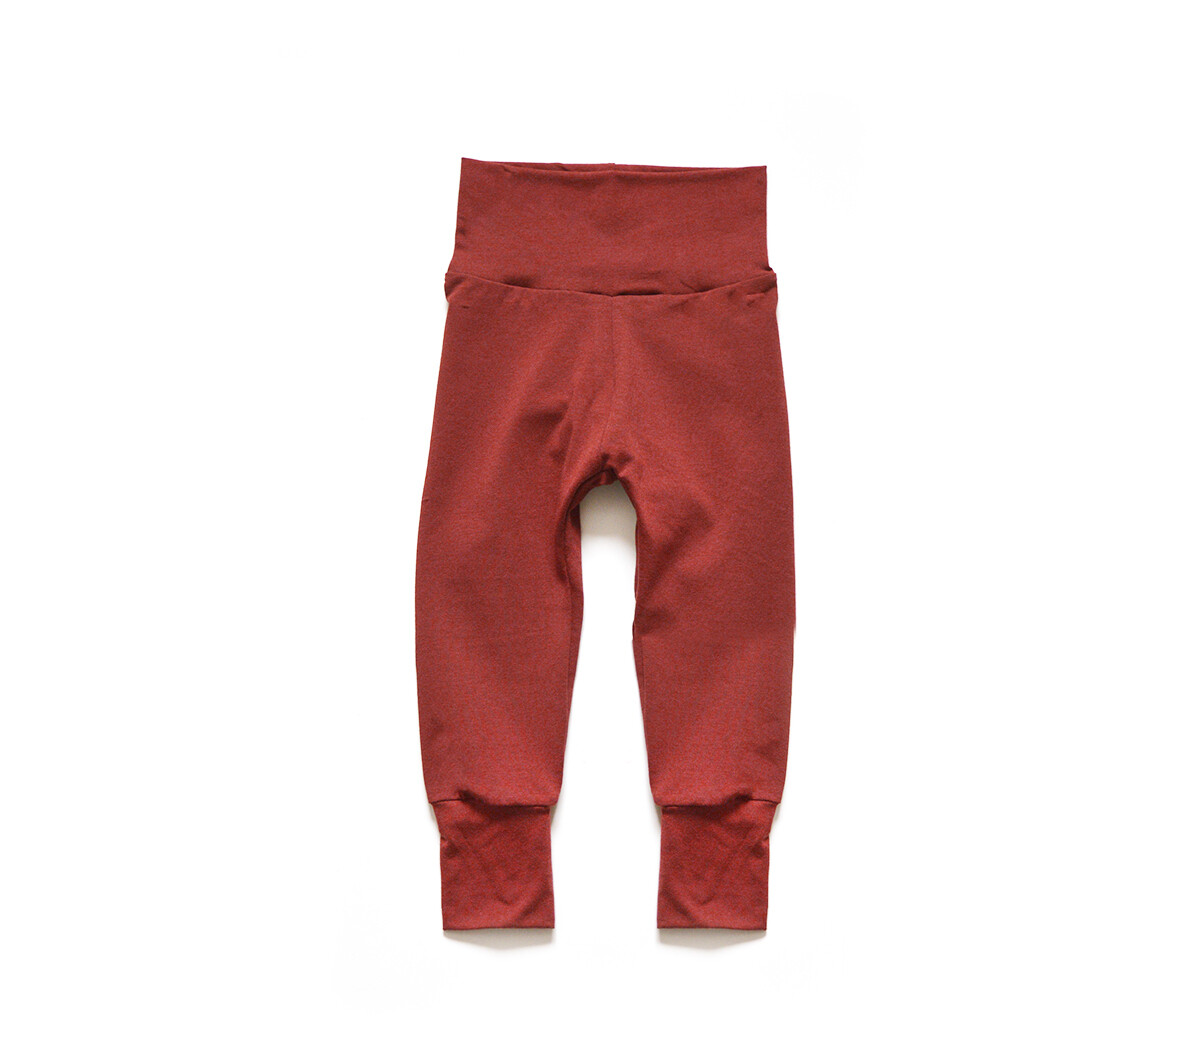 Little Sprout Pants™ in Terra Cotta | Grow With Me Leggings